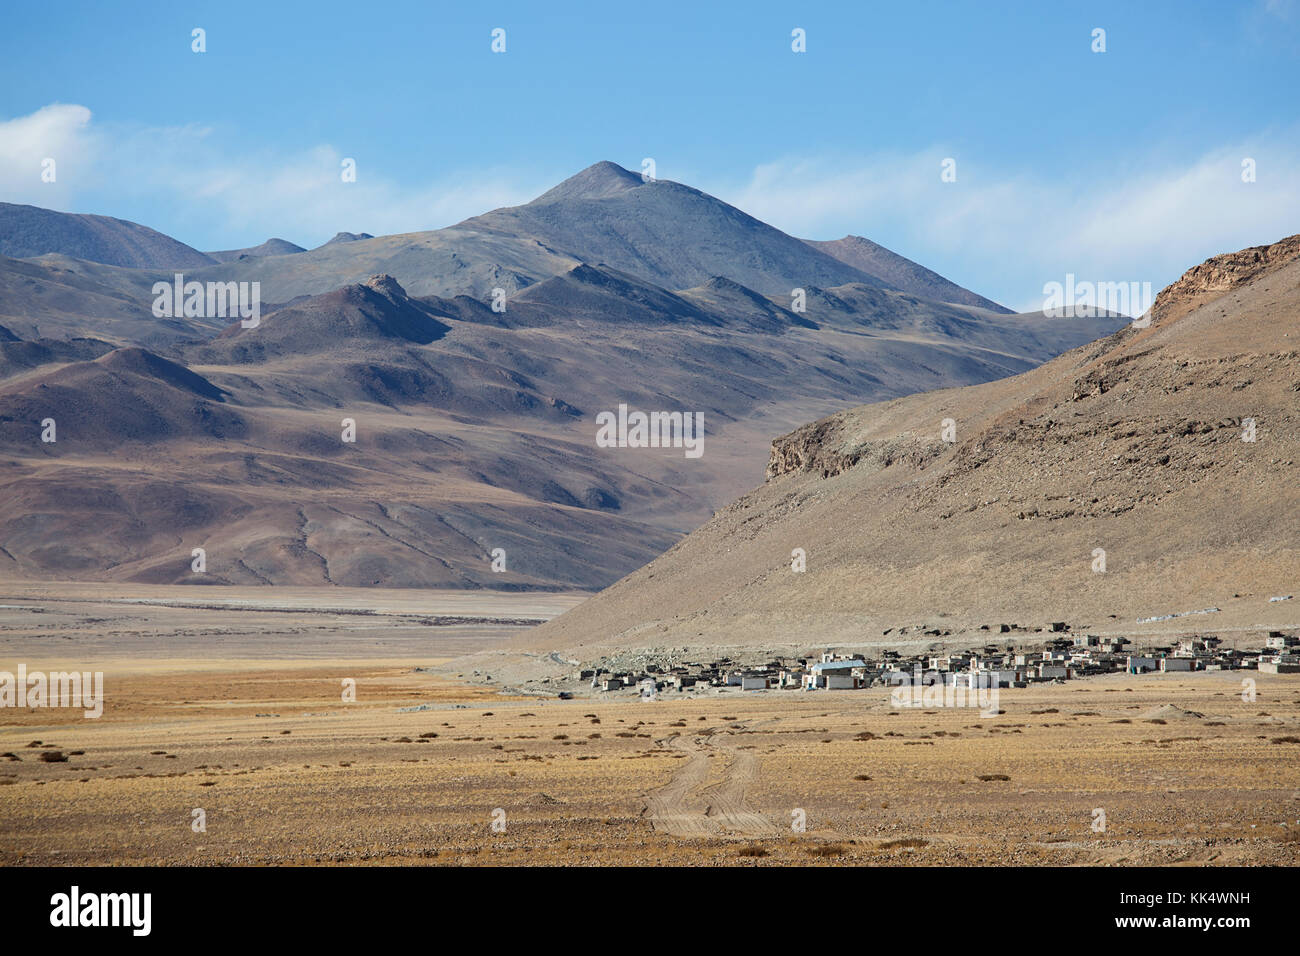 Village in the barren landscape on a clear autumn day at a fluctuating salt lake Tso Kar, Ladakh, India - Stock Image